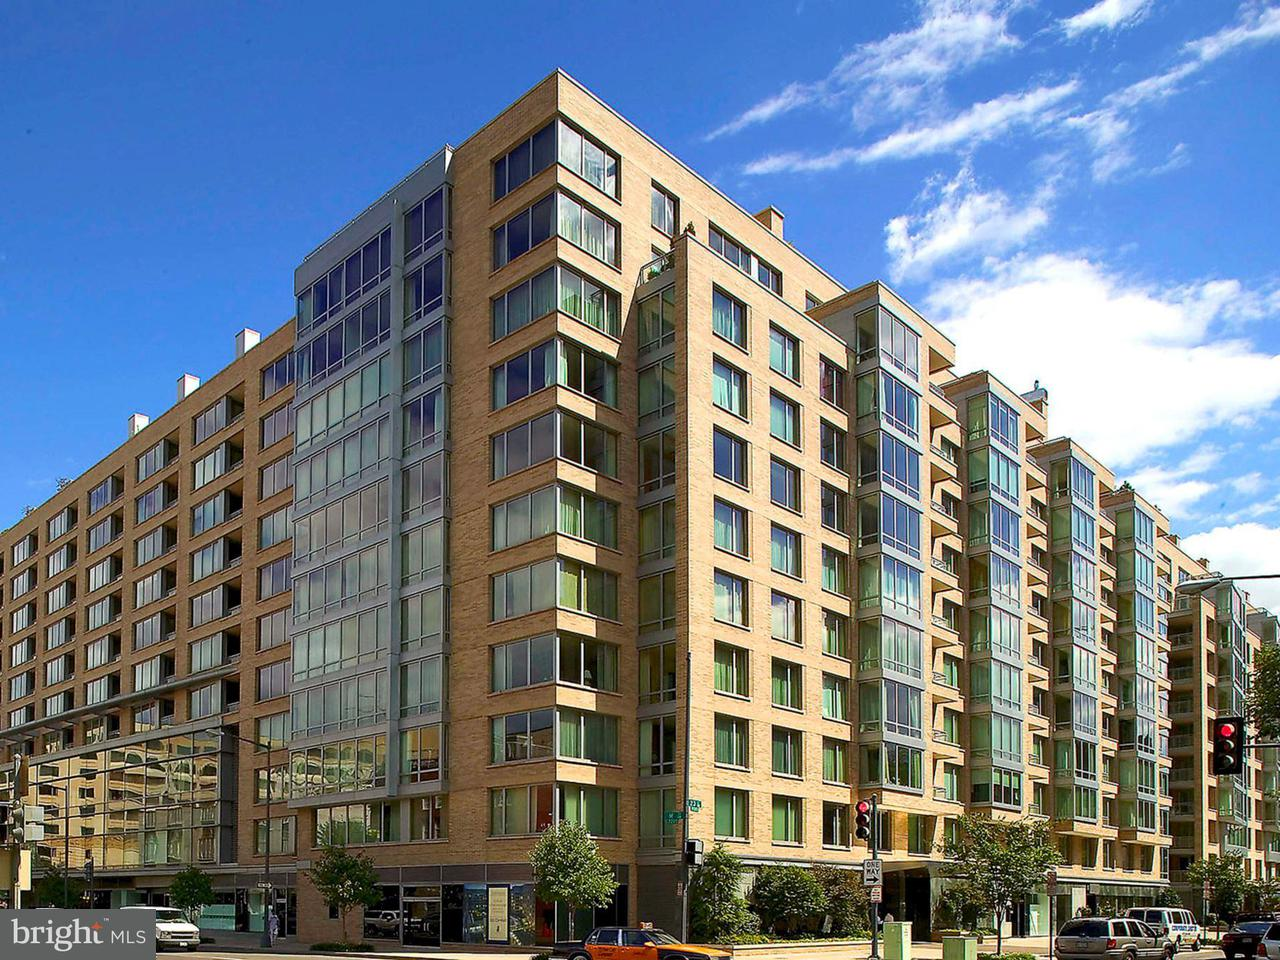 Condominium for Sale at 1155 23rd St Nw #2c 1155 23rd St Nw #2c Washington, District Of Columbia 20037 United States